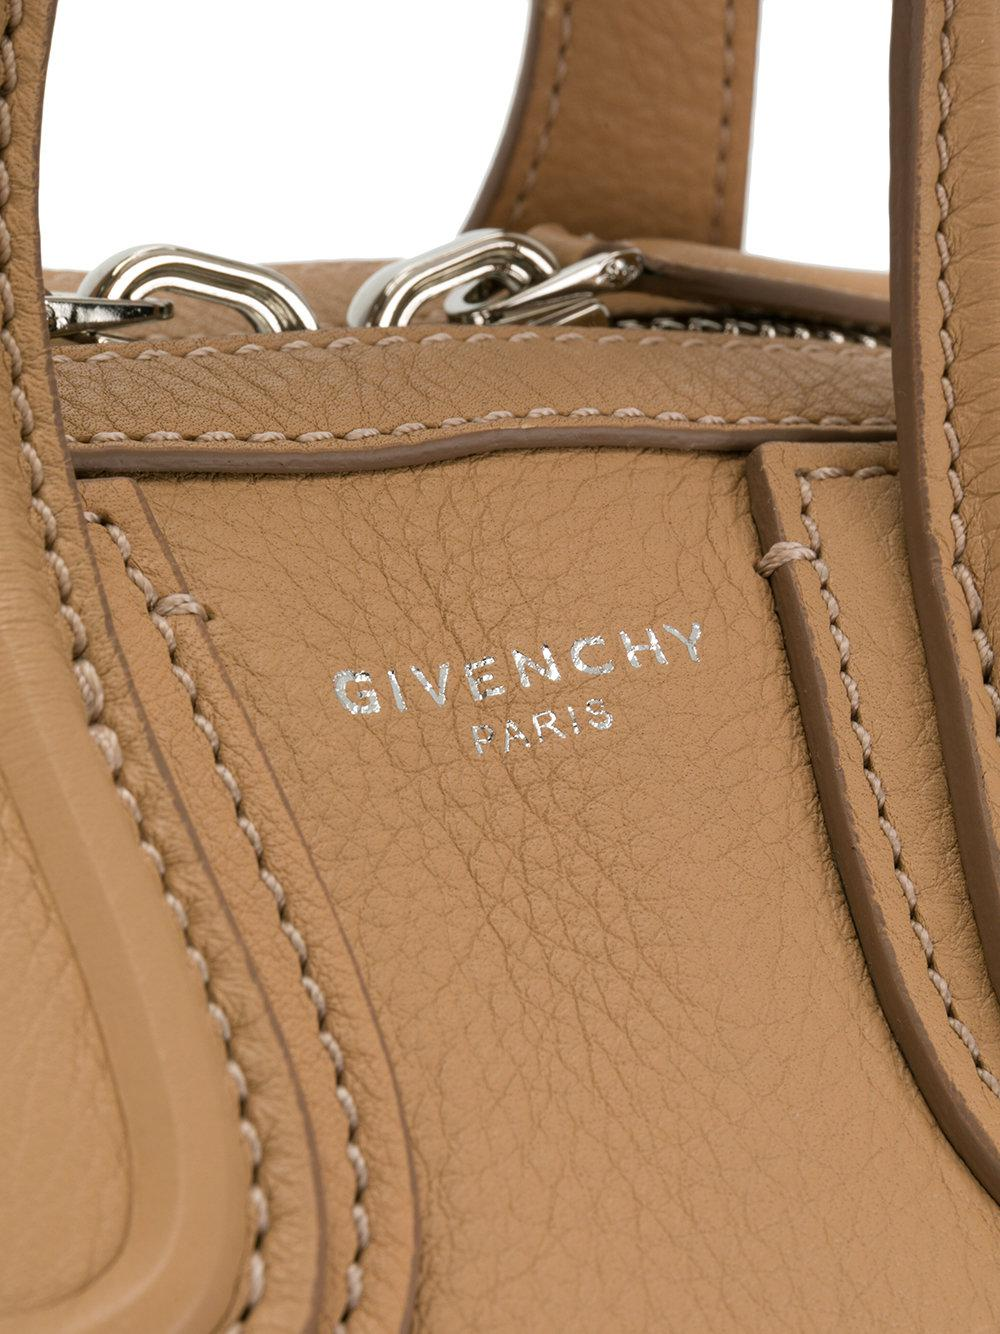 3cb0b8478c Givenchy Small Nightingale Tote Bag in Natural - Lyst